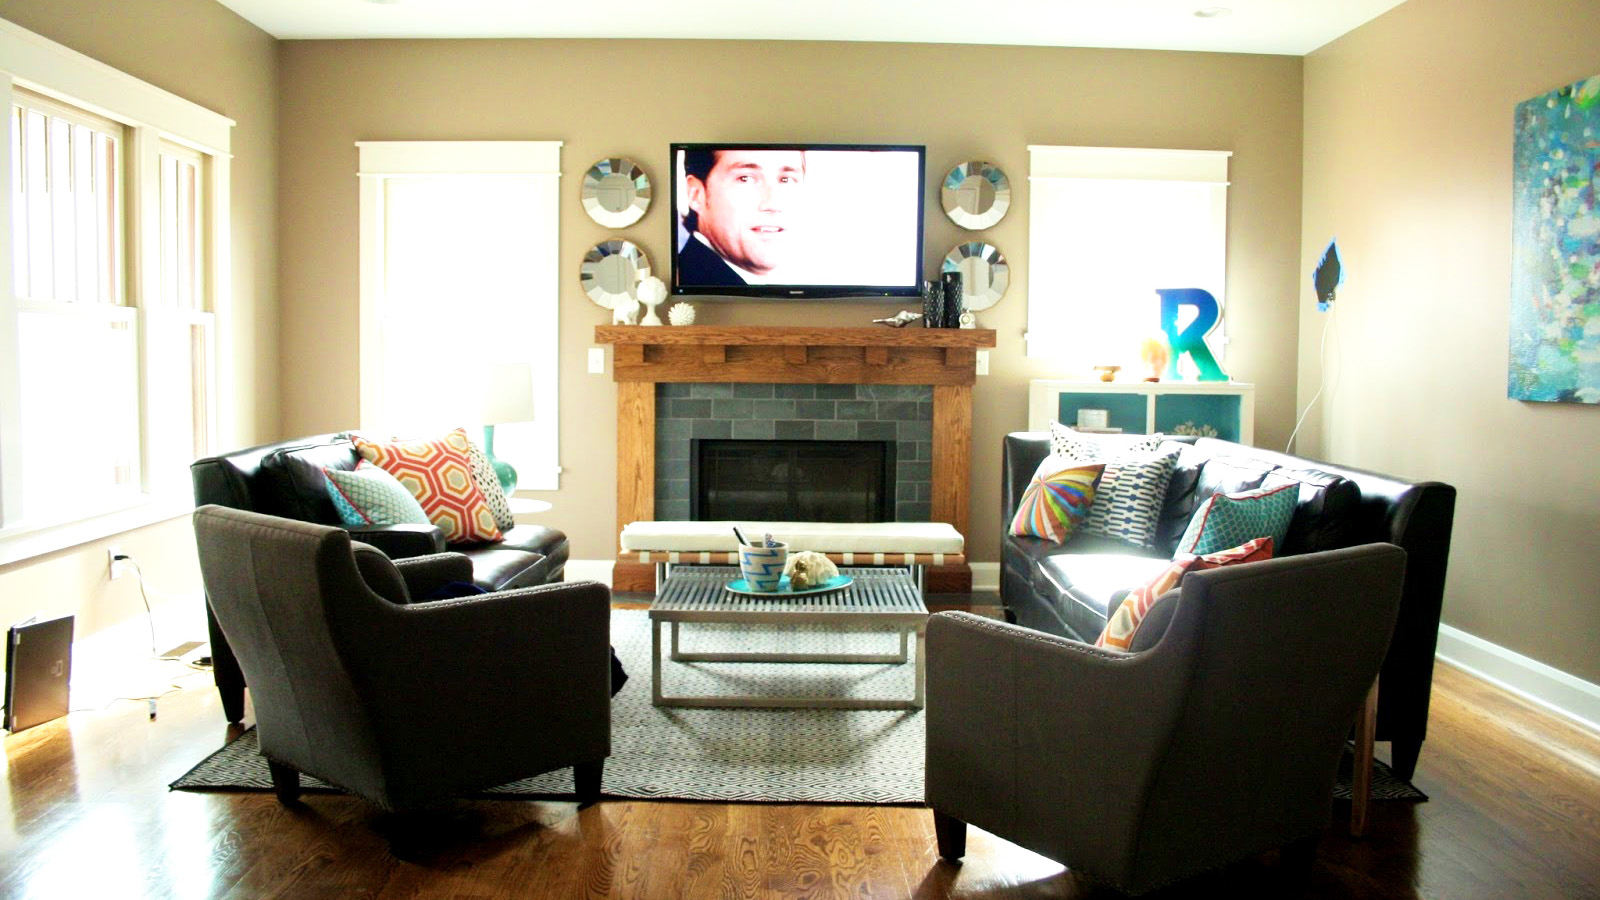 small-living-room-spaces-with-hardwood-flooring-ideas-and-best-interior-paint-colors-ideas-with-black-living-room-sofa